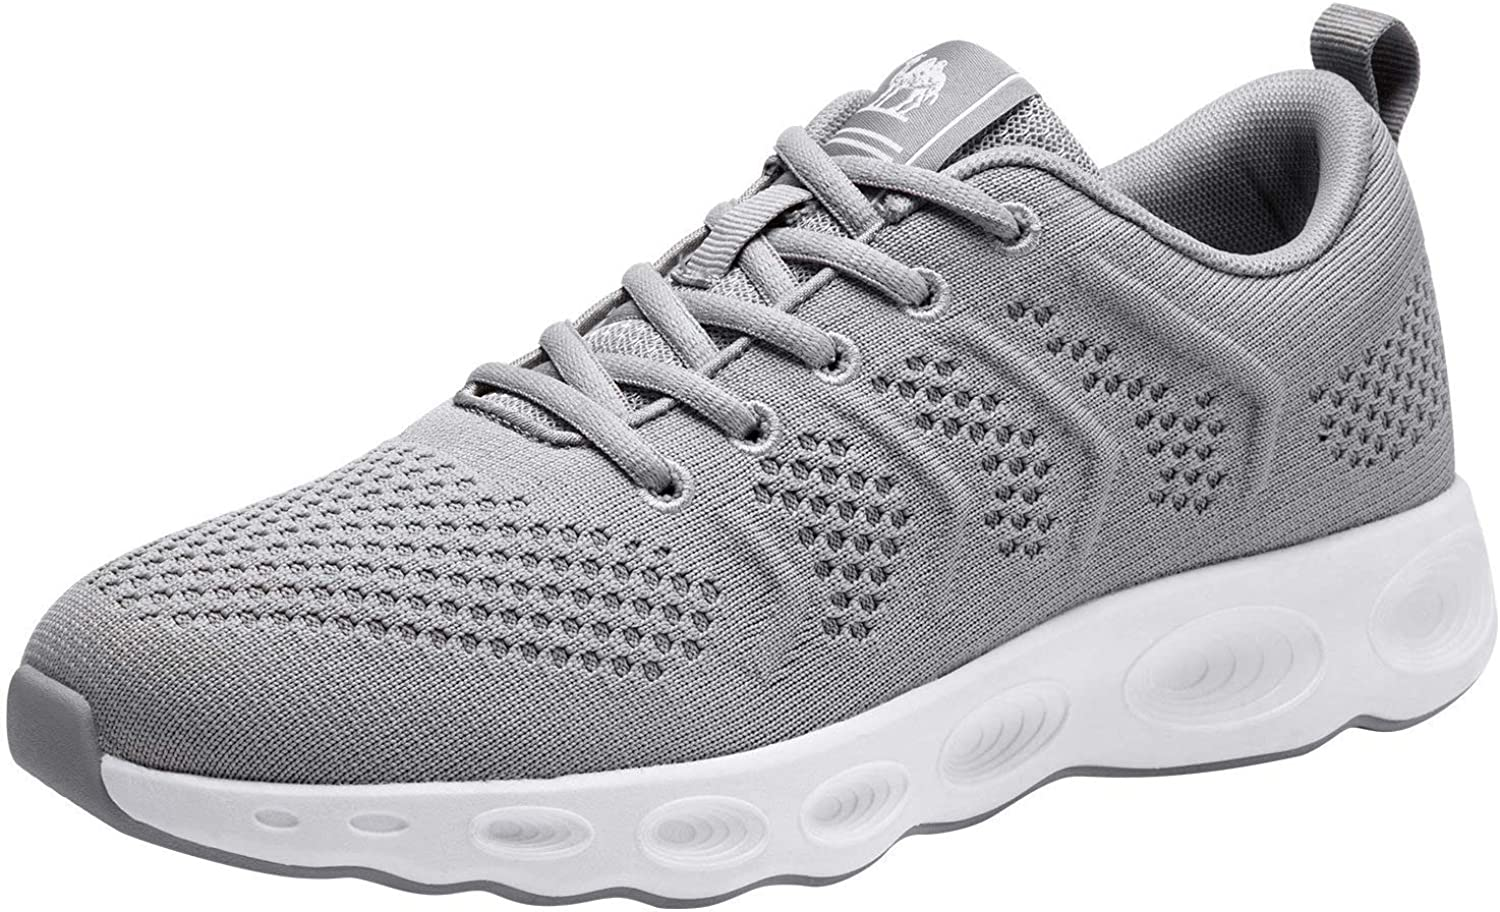 CAMEL CROWN Running Shoes Men Tennis Walking Trainning Trail Lightweight Comfortable Sneakers Athletic Gym Casual Footwear for Sports Outdoors Grey 11